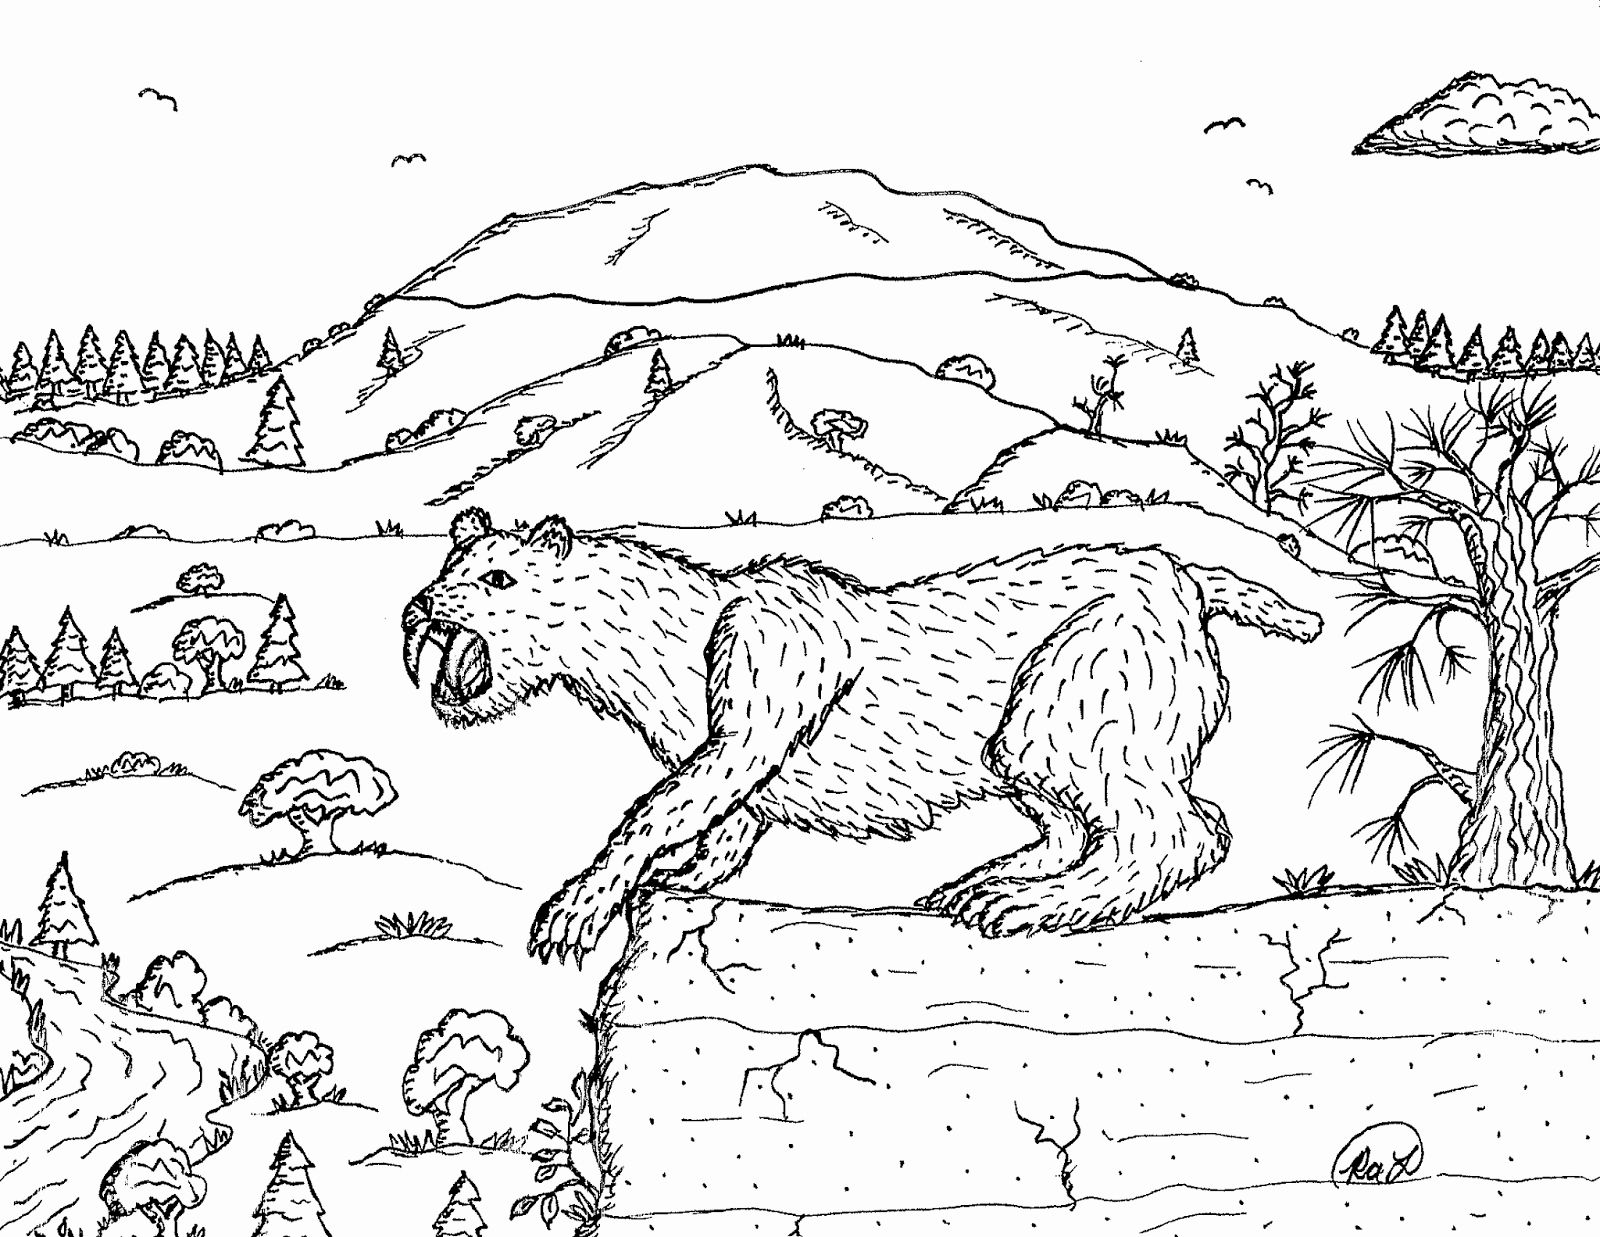 Saber Tooth Tiger Coloring Page Elegant Robin S Great Coloring Pages Smilodon Saber Tooth Cats Coloring Pages Dragon Coloring Page Sabertooth